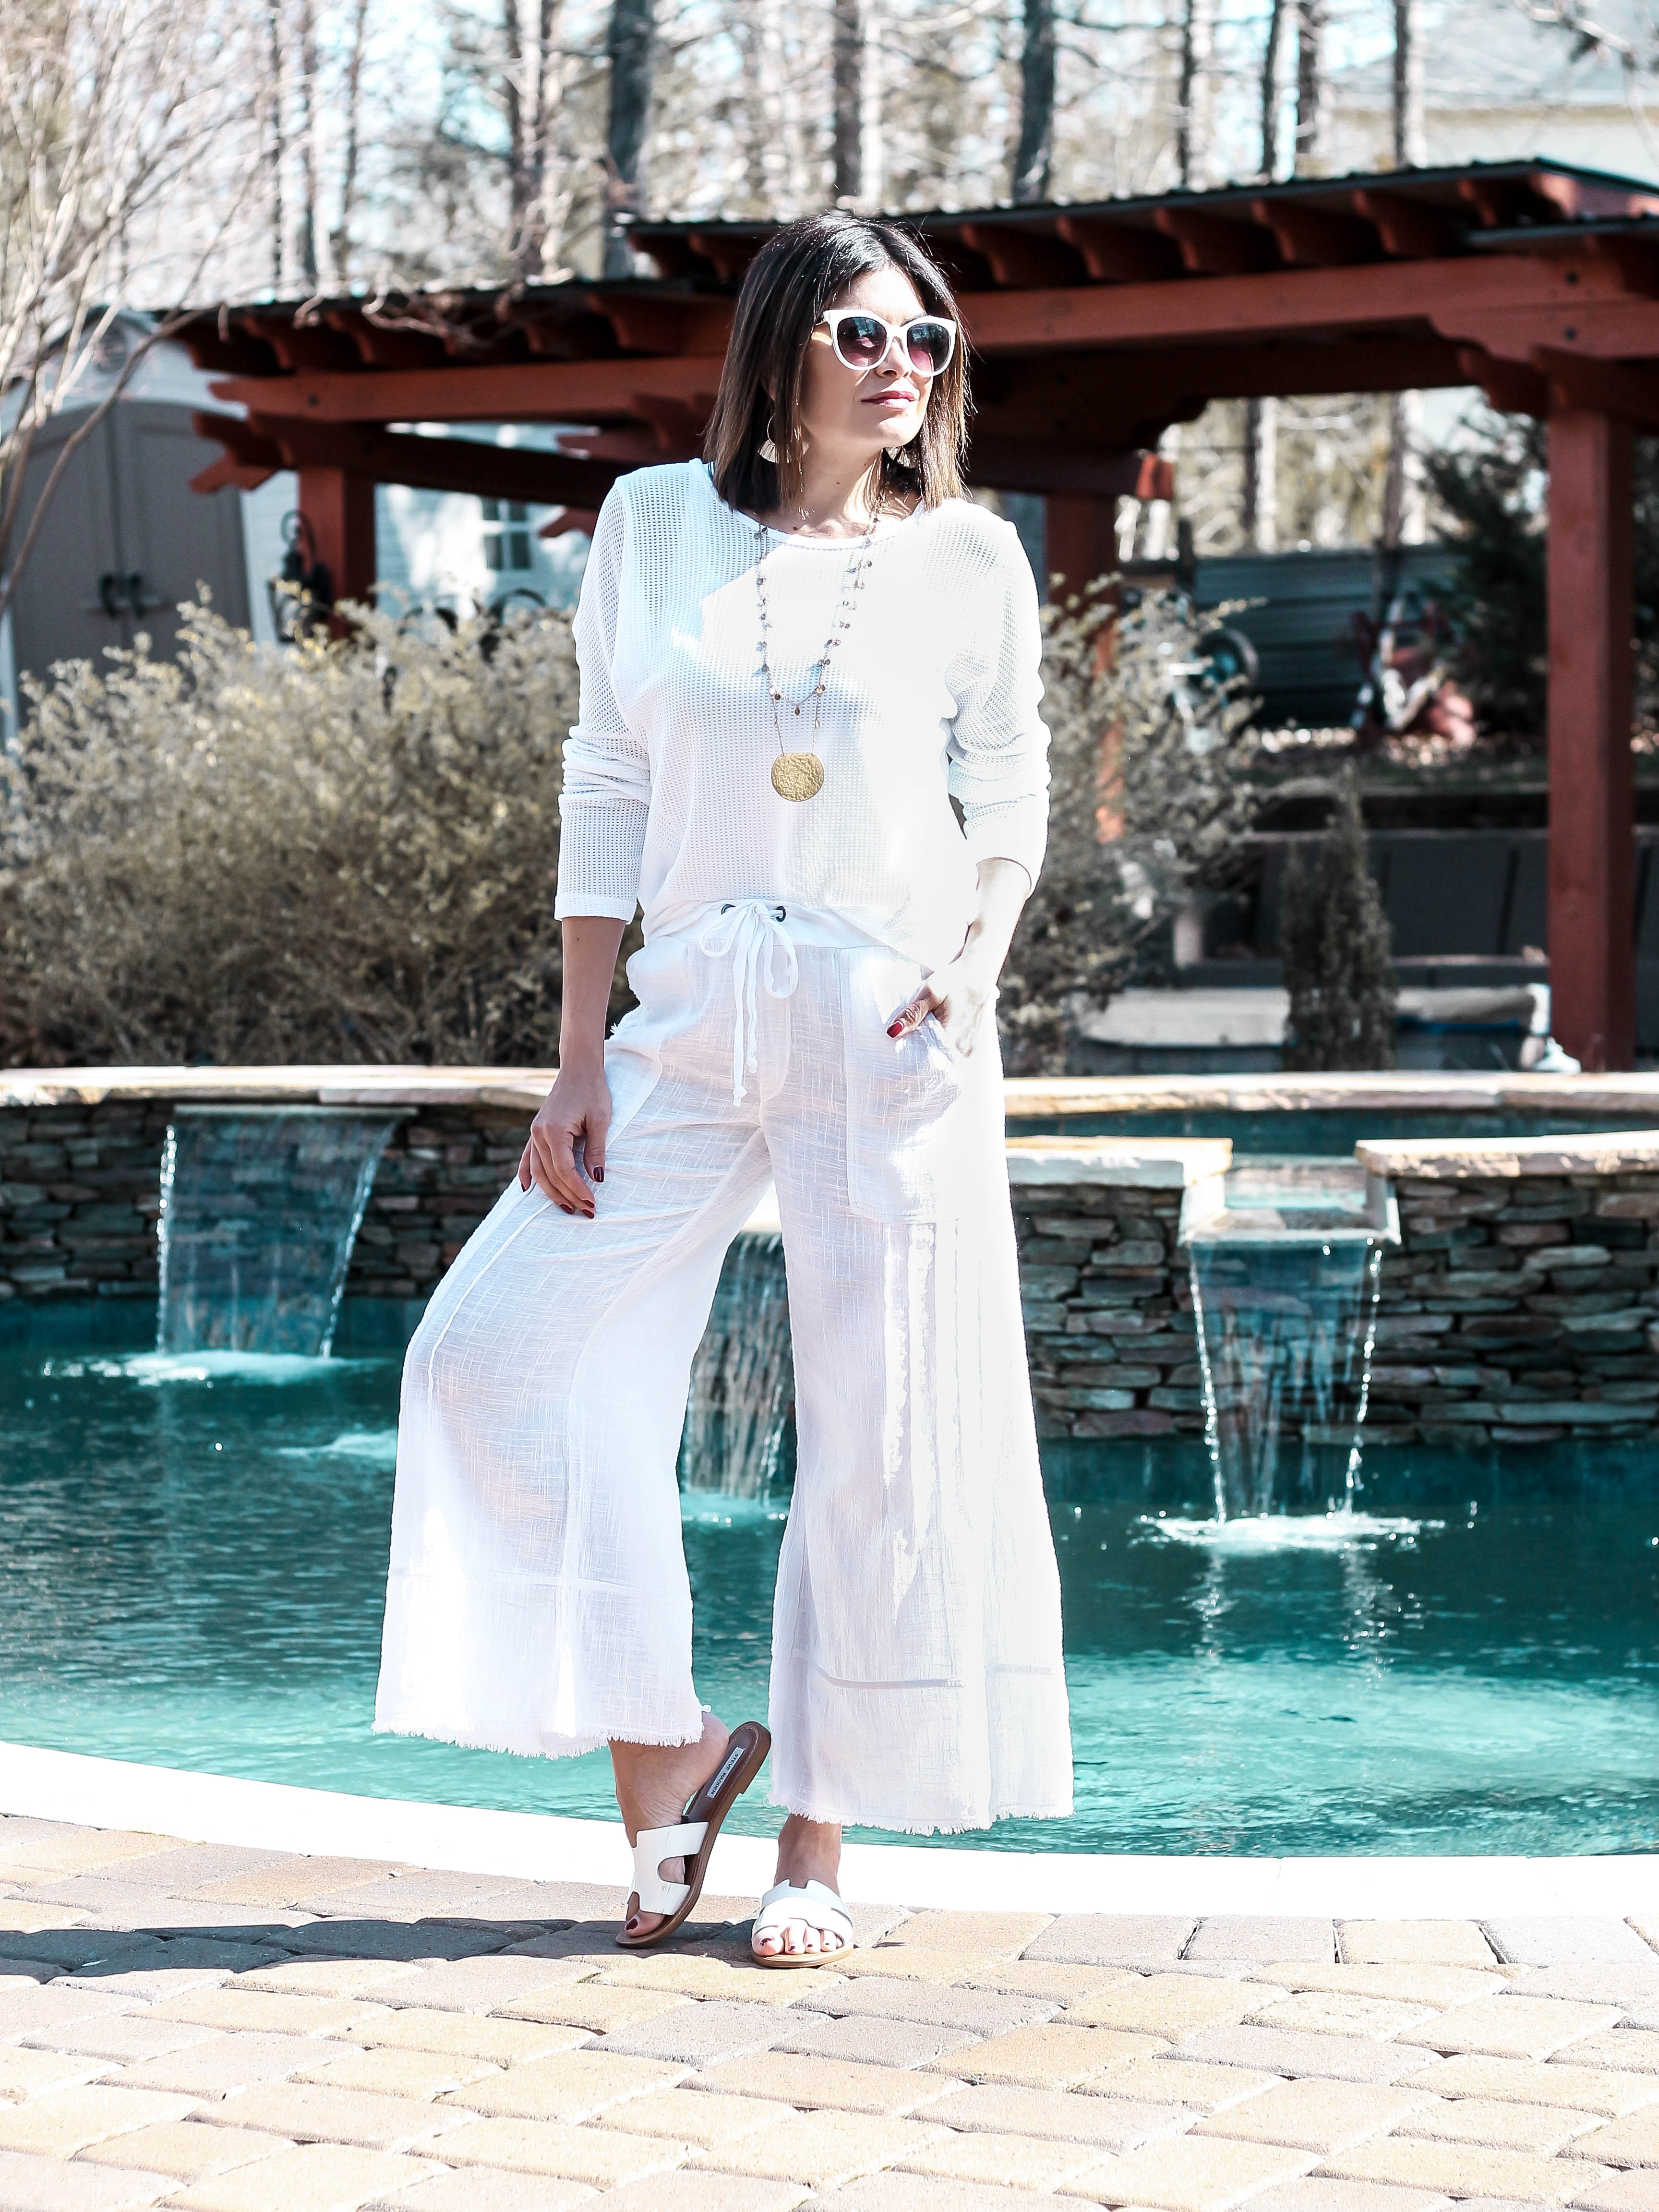 2 Resort-Wear Outfits to Get You Beach Ready